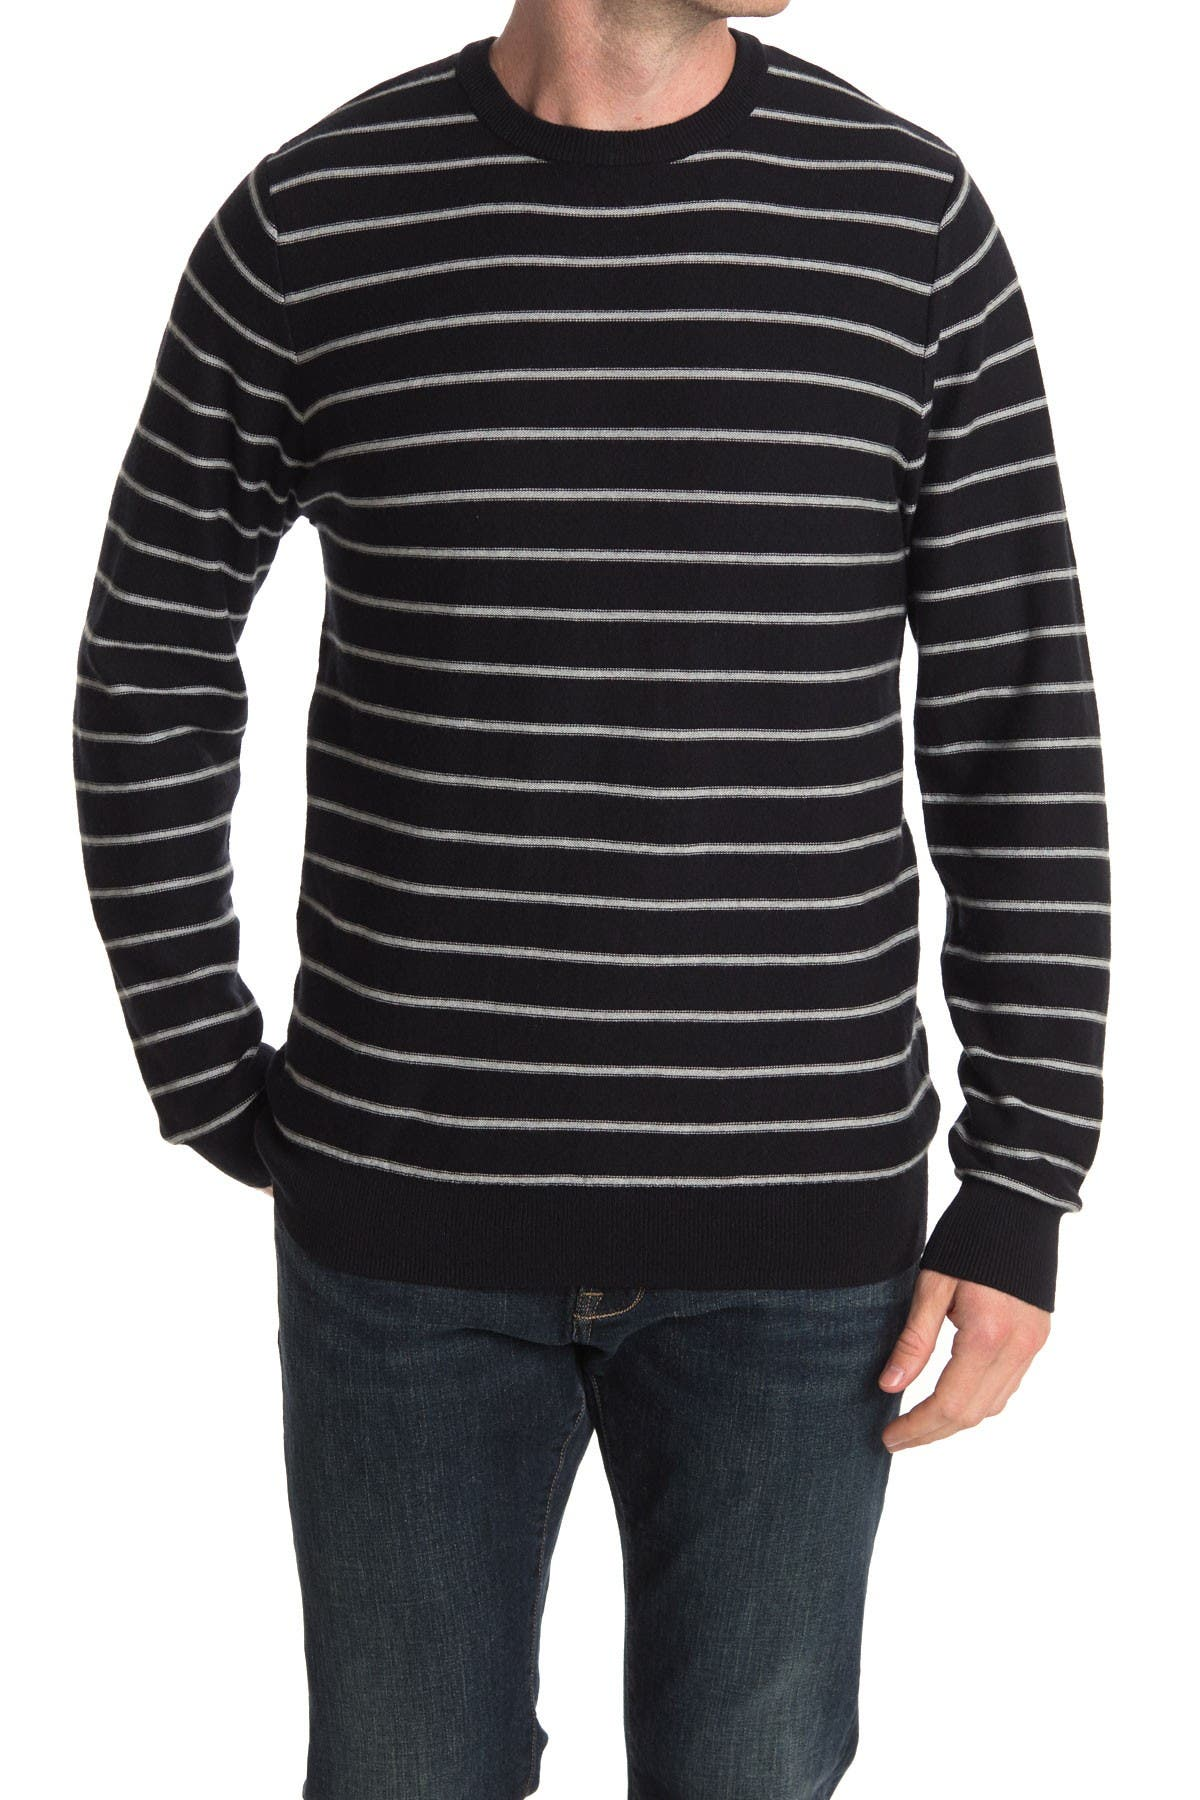 Image of WALLIN & BROS Cotton Cashmere Striped Crew Sweater